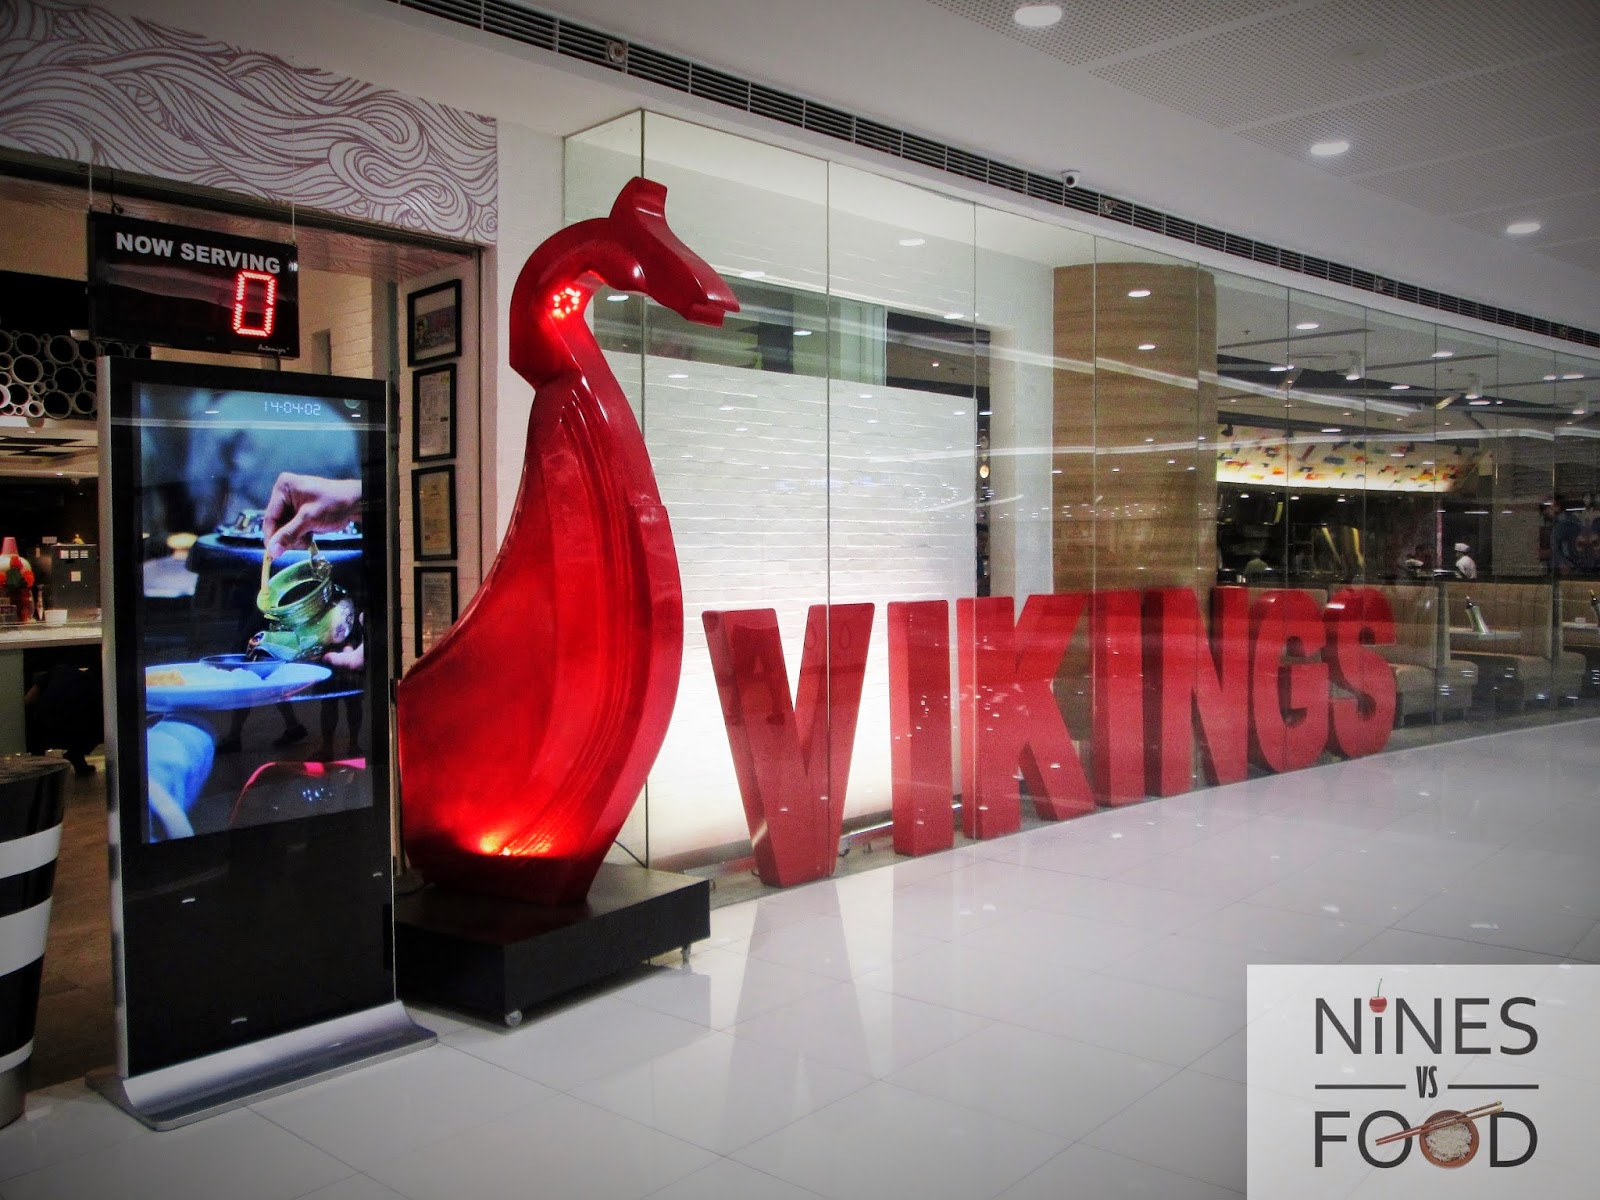 Nines vs. Food - Vikings SM Megamall-1.jpg